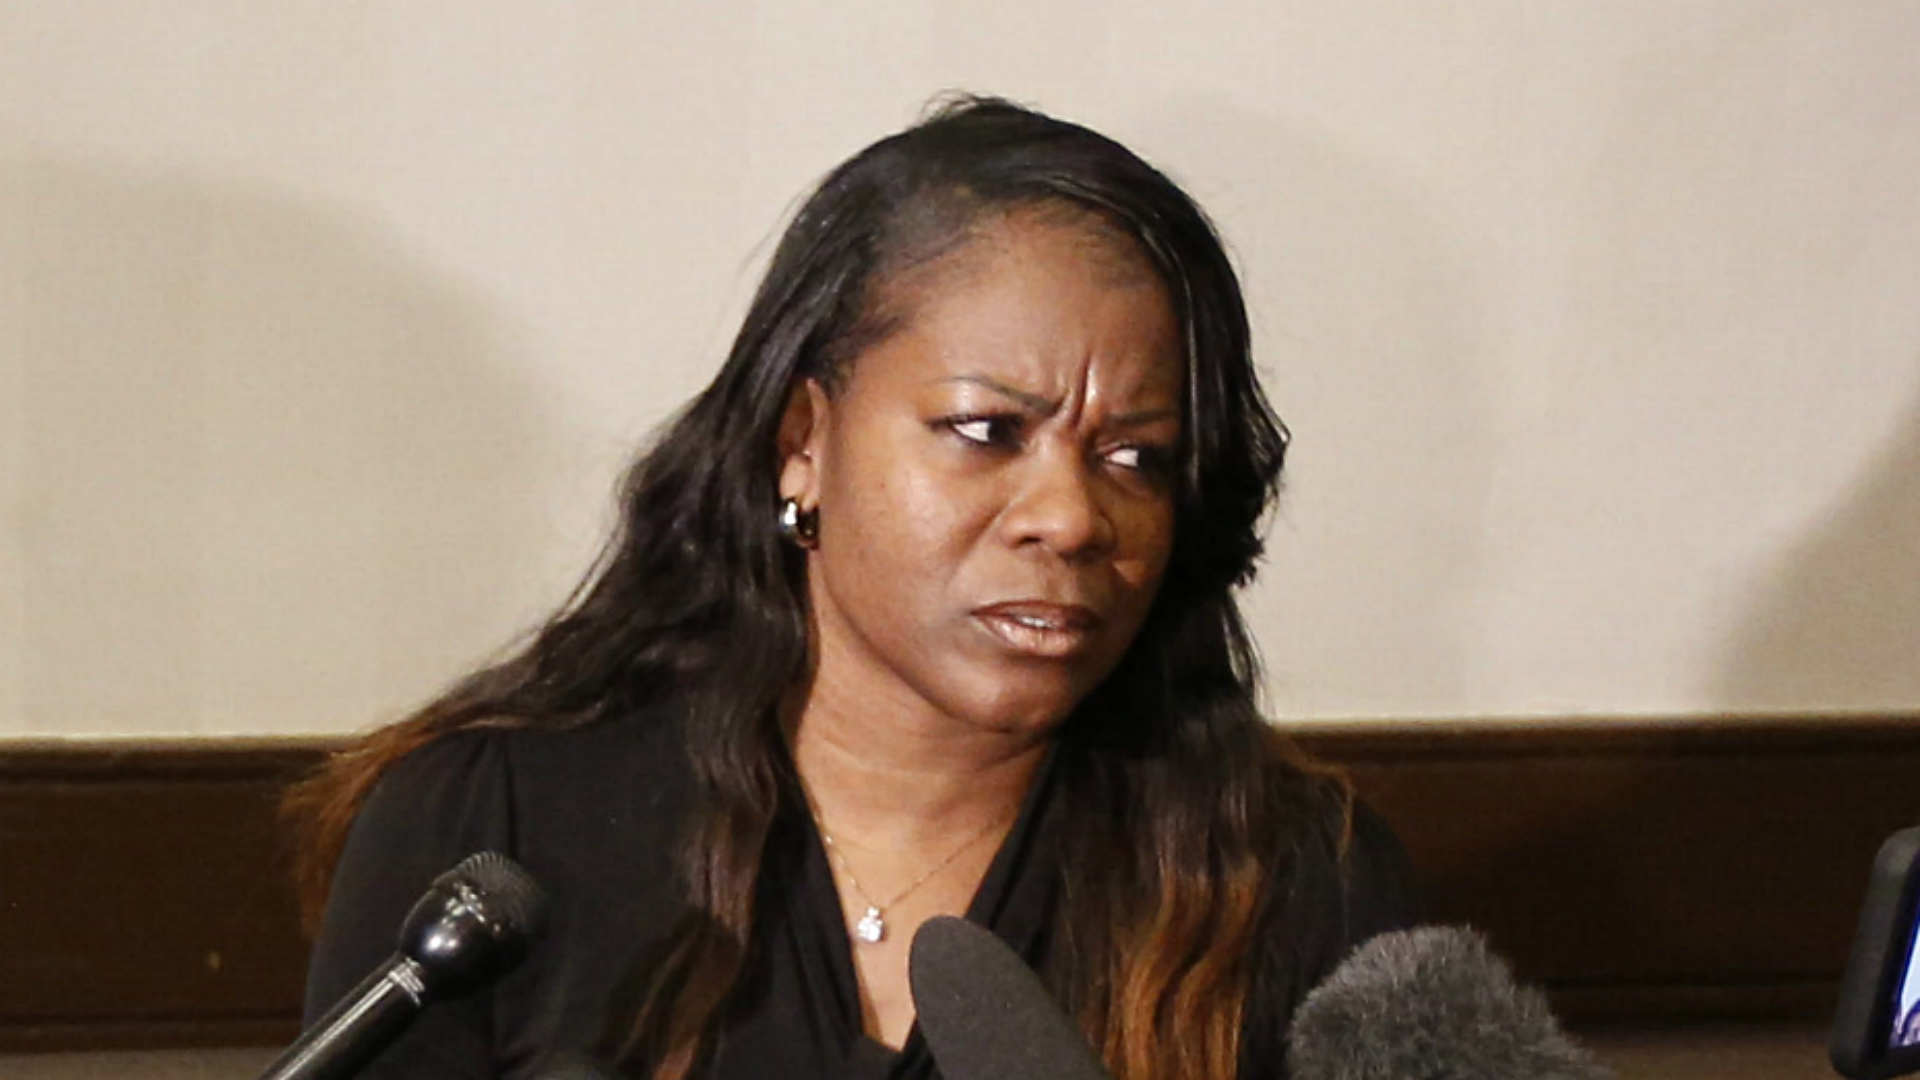 loyola fires coach sheryl swoopes after investigation into